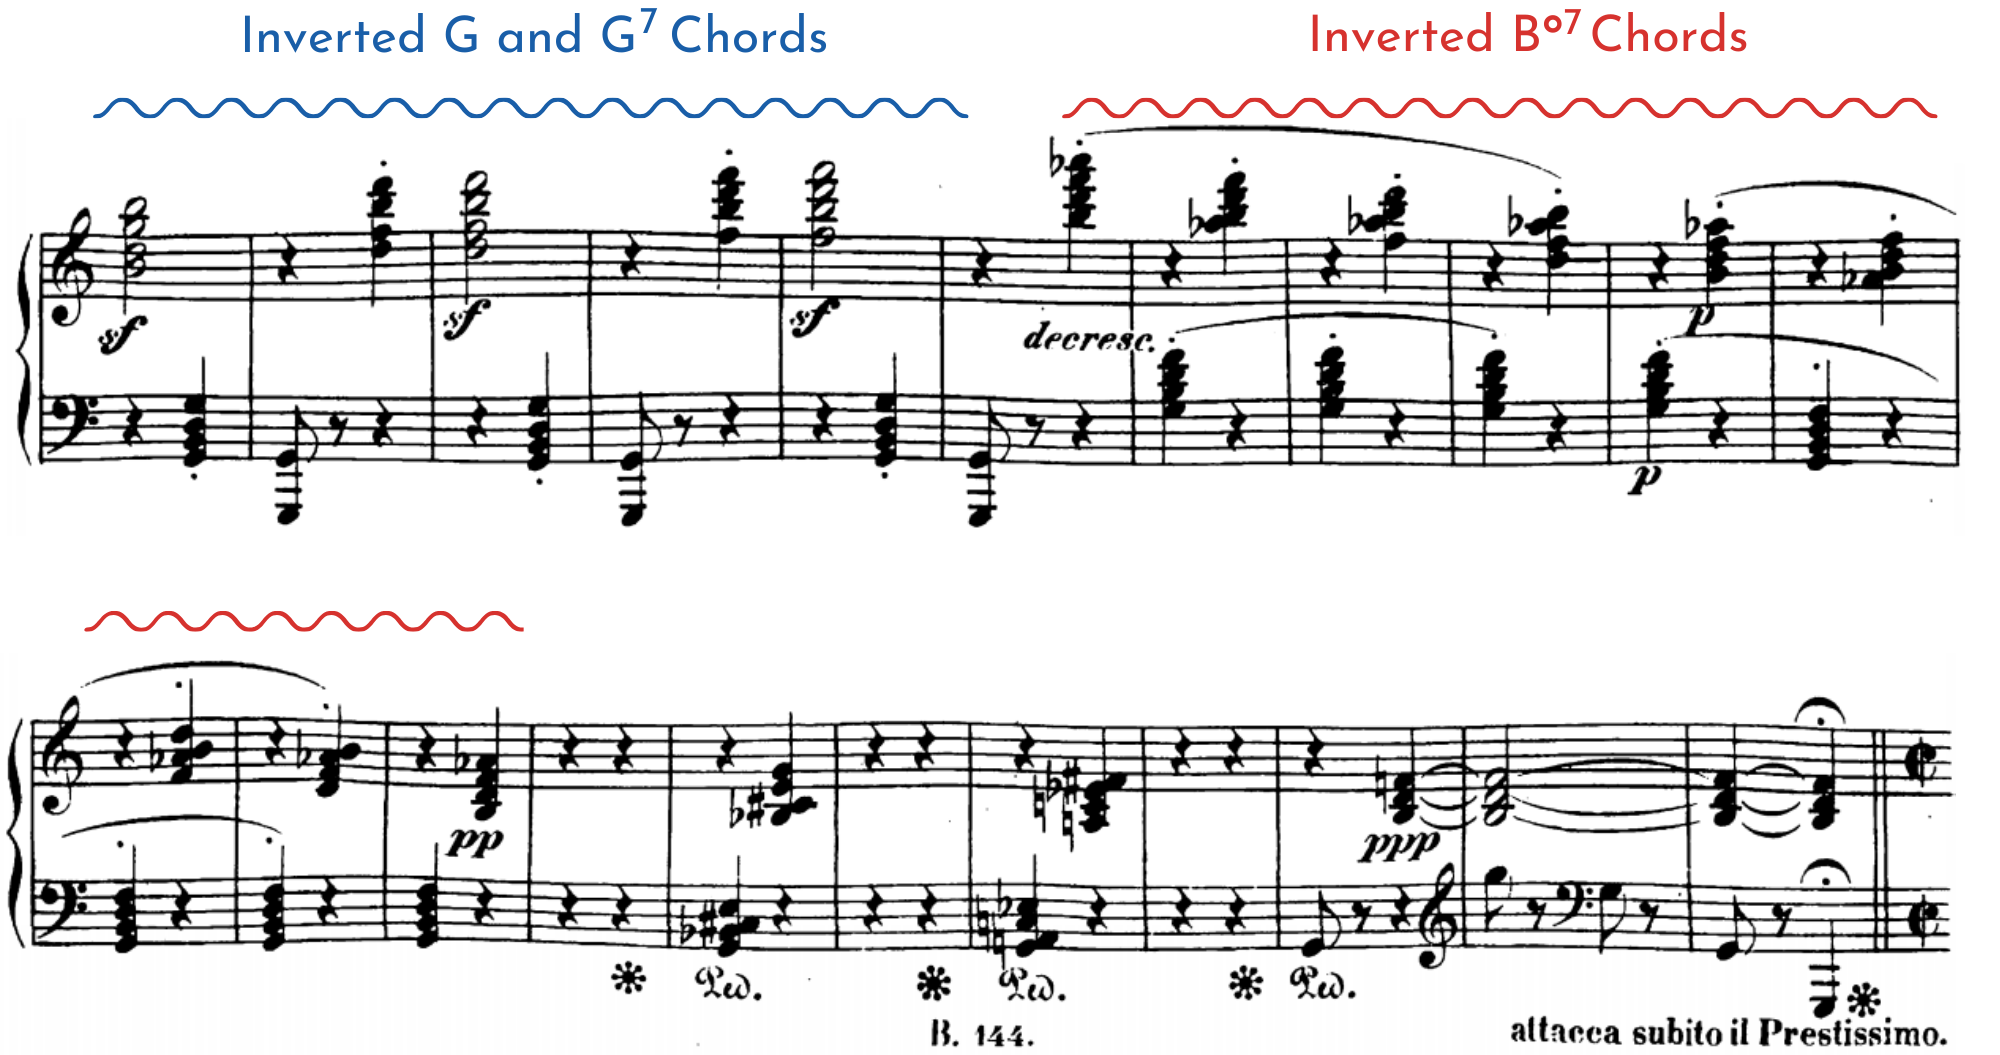 Waldstein Piano Sonata section with inverted G chords